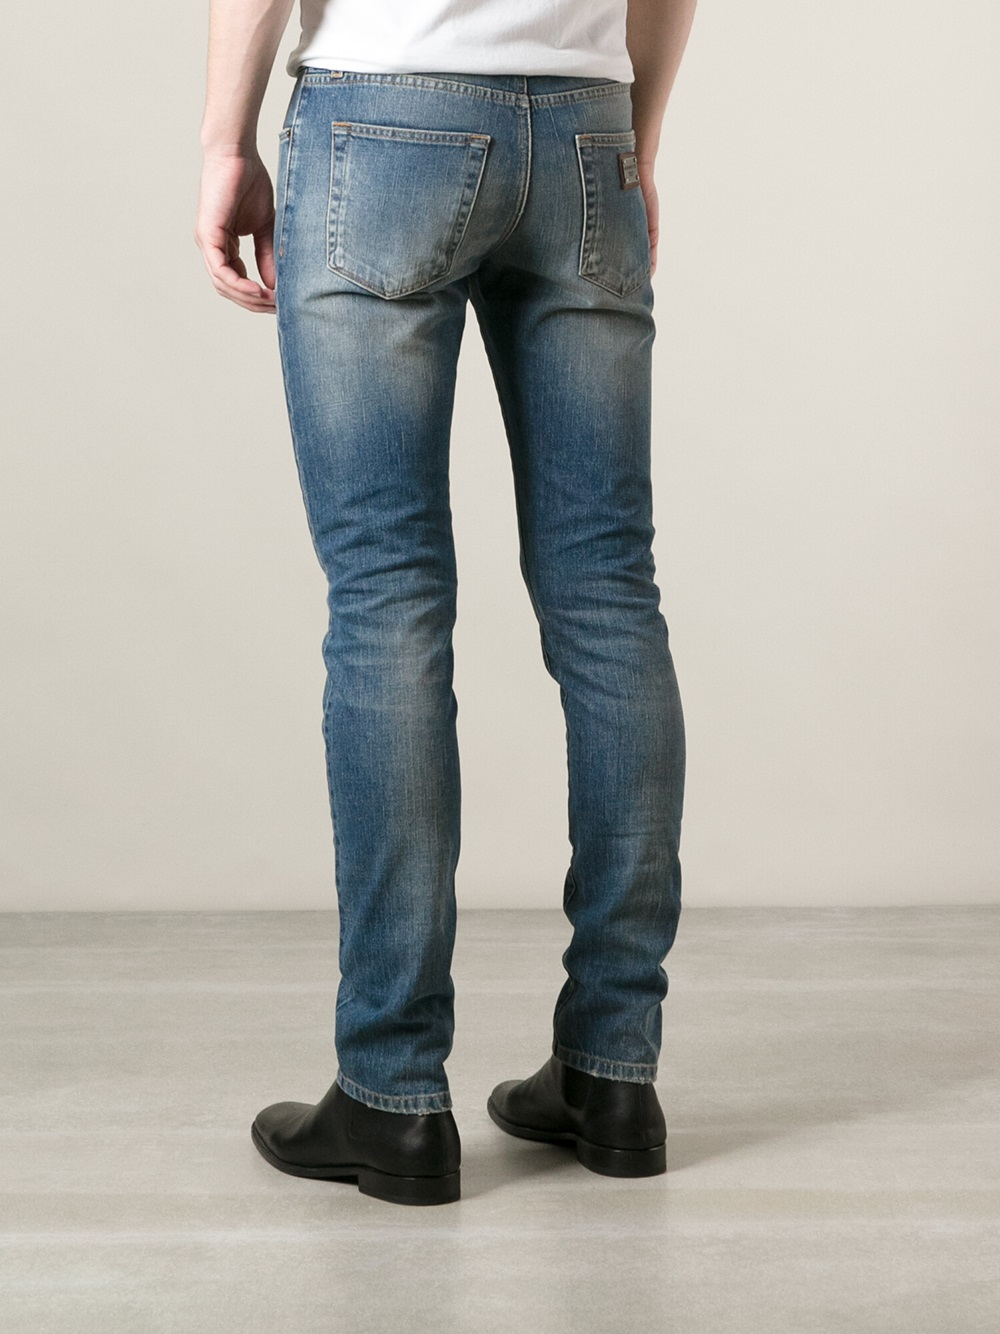 eb2f082d7 Dolce   gabbana Slim Fit Jeans in Blue for Men